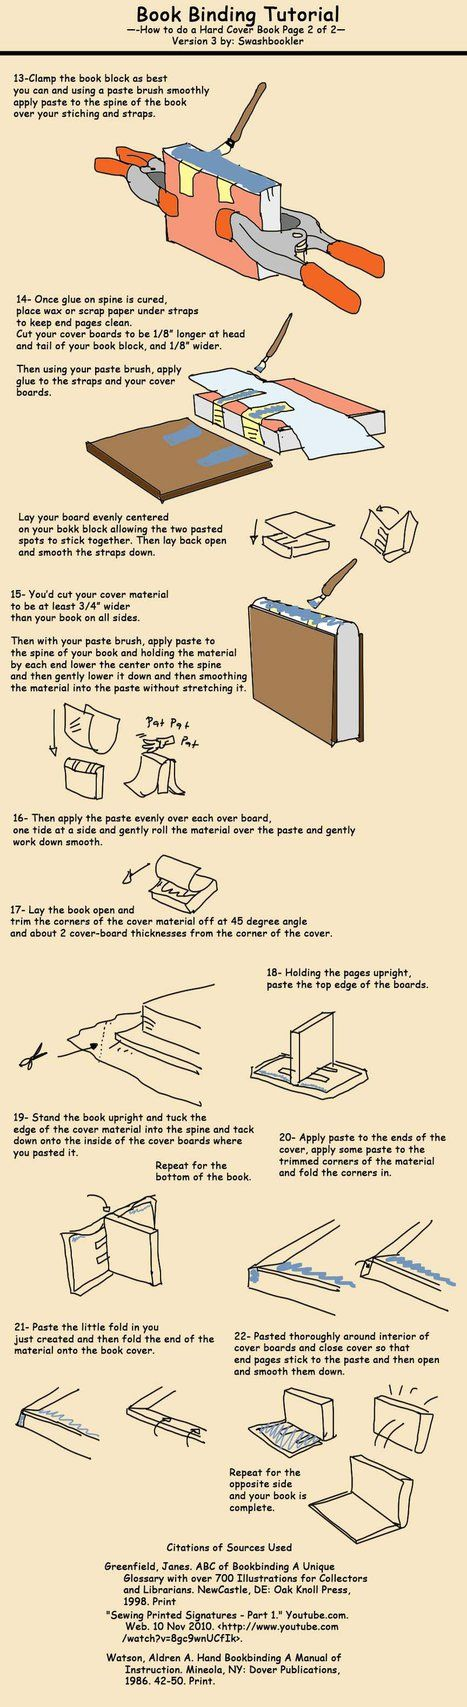 Book Tutorial pg 2 by Swashbookler on DeviantArt